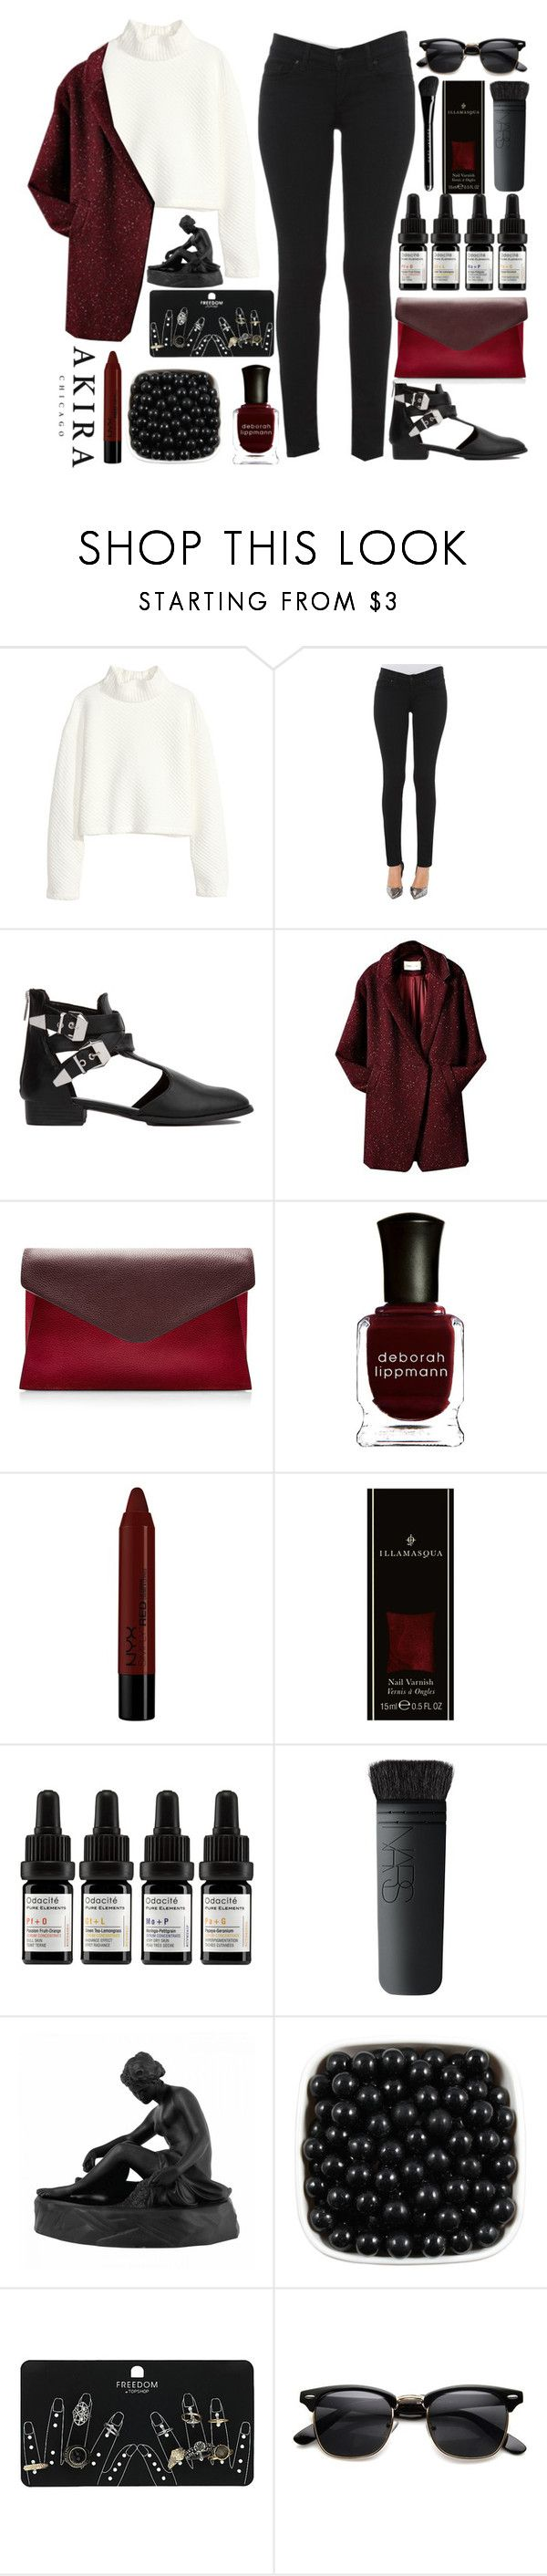 """#Stevie Wonder - Uptight!"" by credentovideos ❤ liked on Polyvore featuring H&M, Akira, Valentino, Deborah Lippmann, NYX, Marc Jacobs, Odacité, NARS Cosmetics, Wedgwood and Topshop"